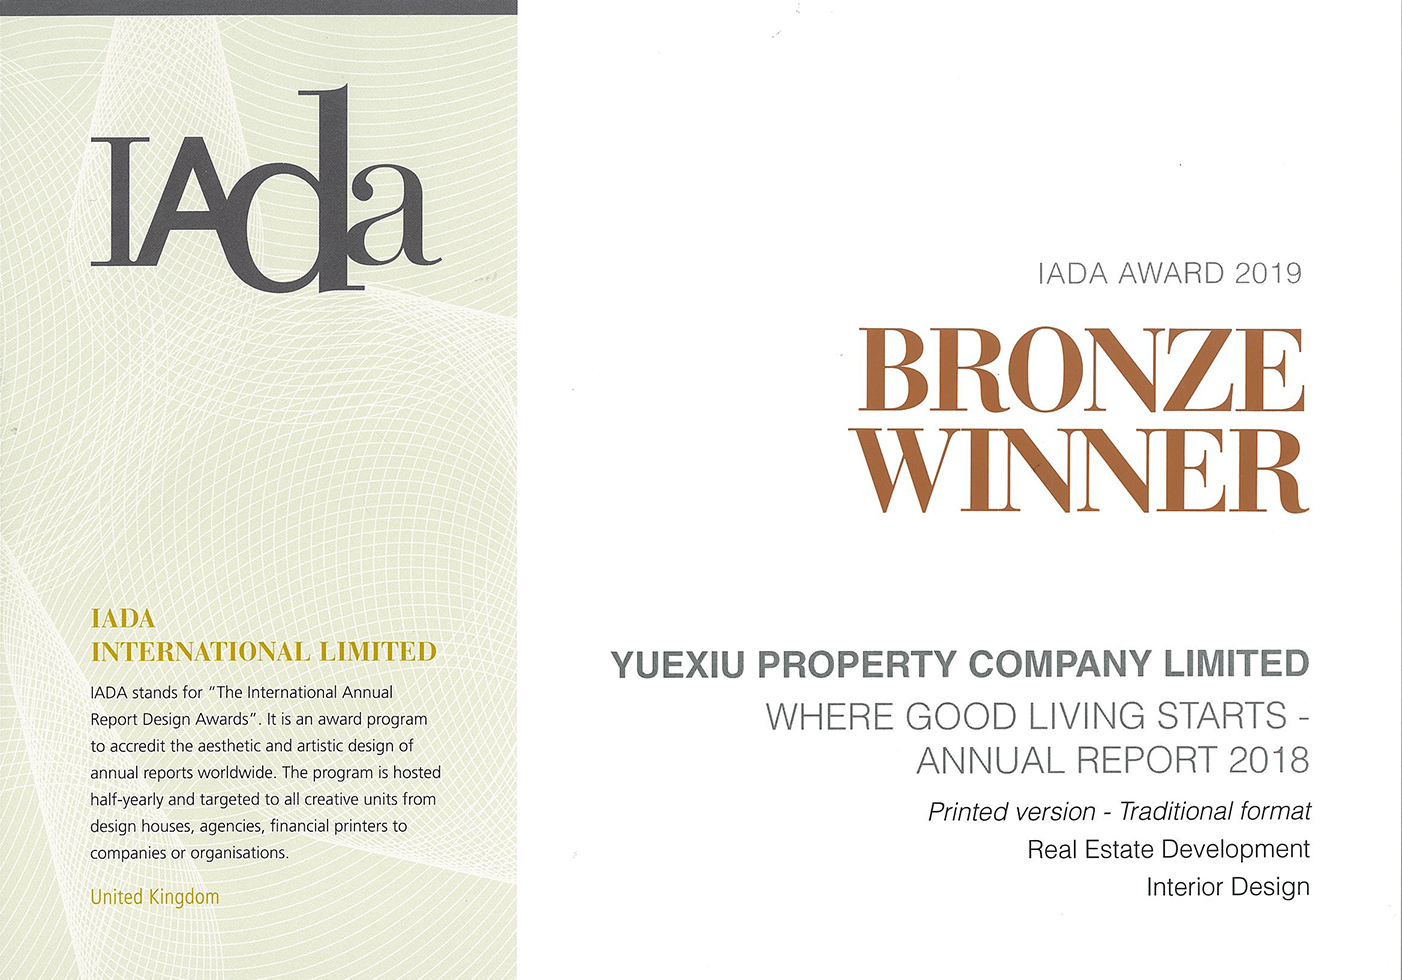 YUEXIU PROPERTY COMPANY LIMITED – IADA AWARD 2019 BRONZE WINNER